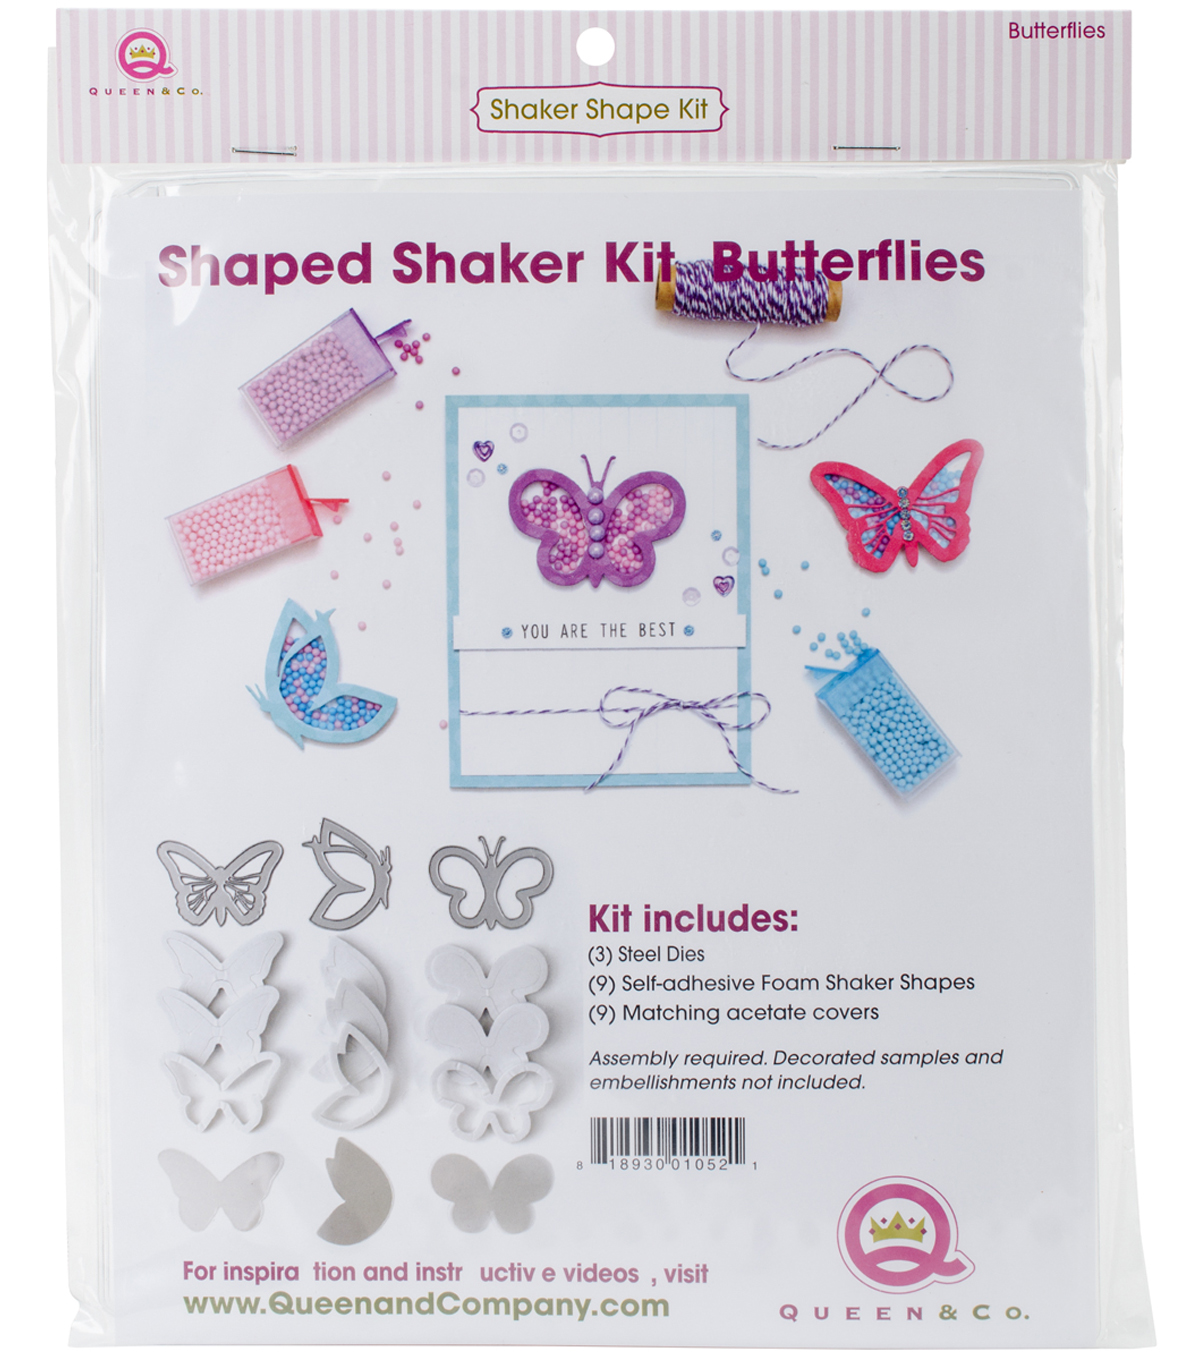 Queen & Company Shaker Shape Kit-Butterflies